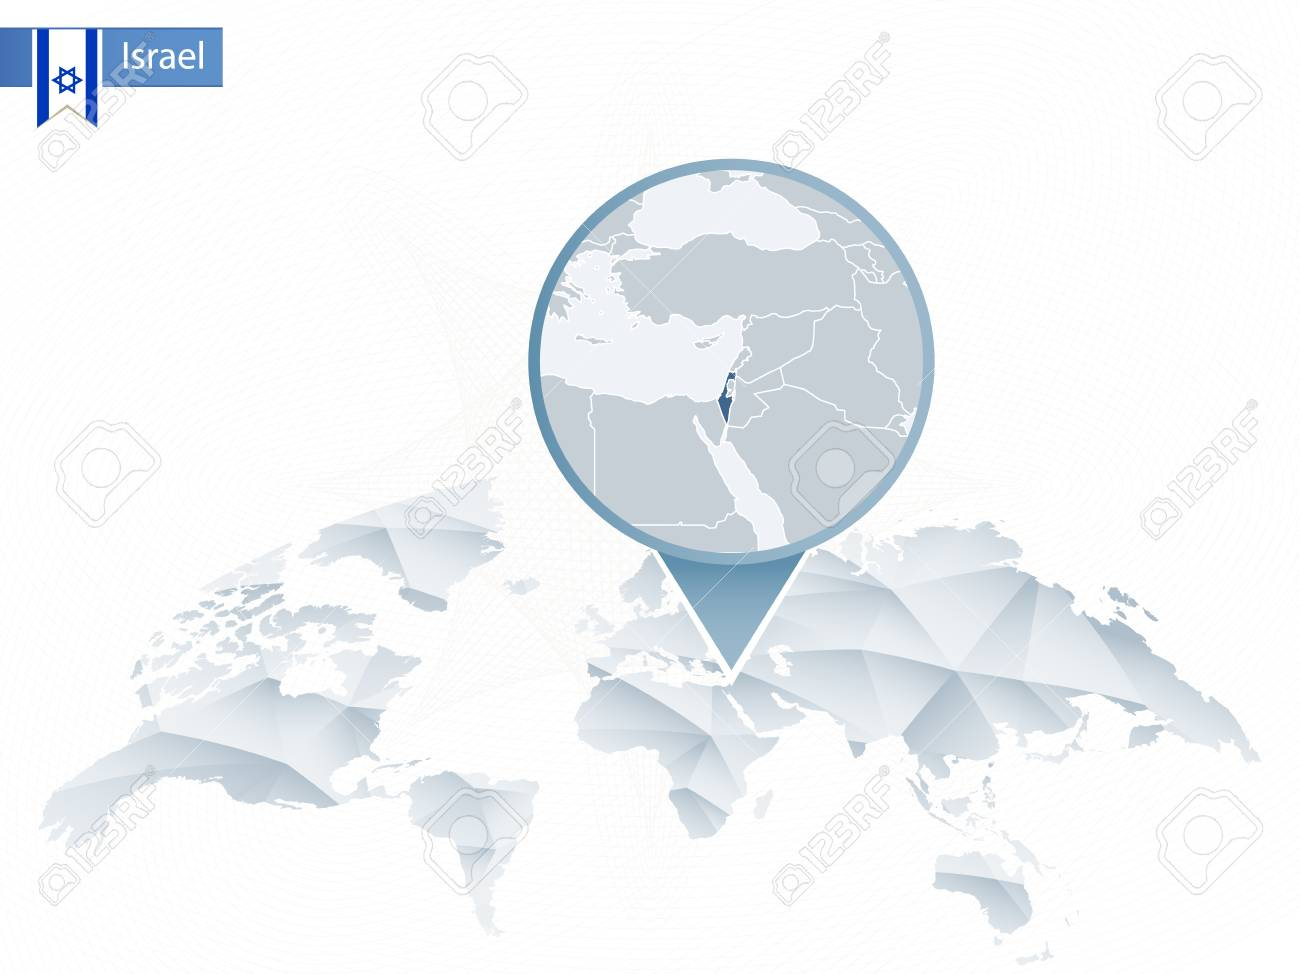 Israel On A Map Of The World.Abstract Rounded World Map With Pinned Detailed Israel Map Vector